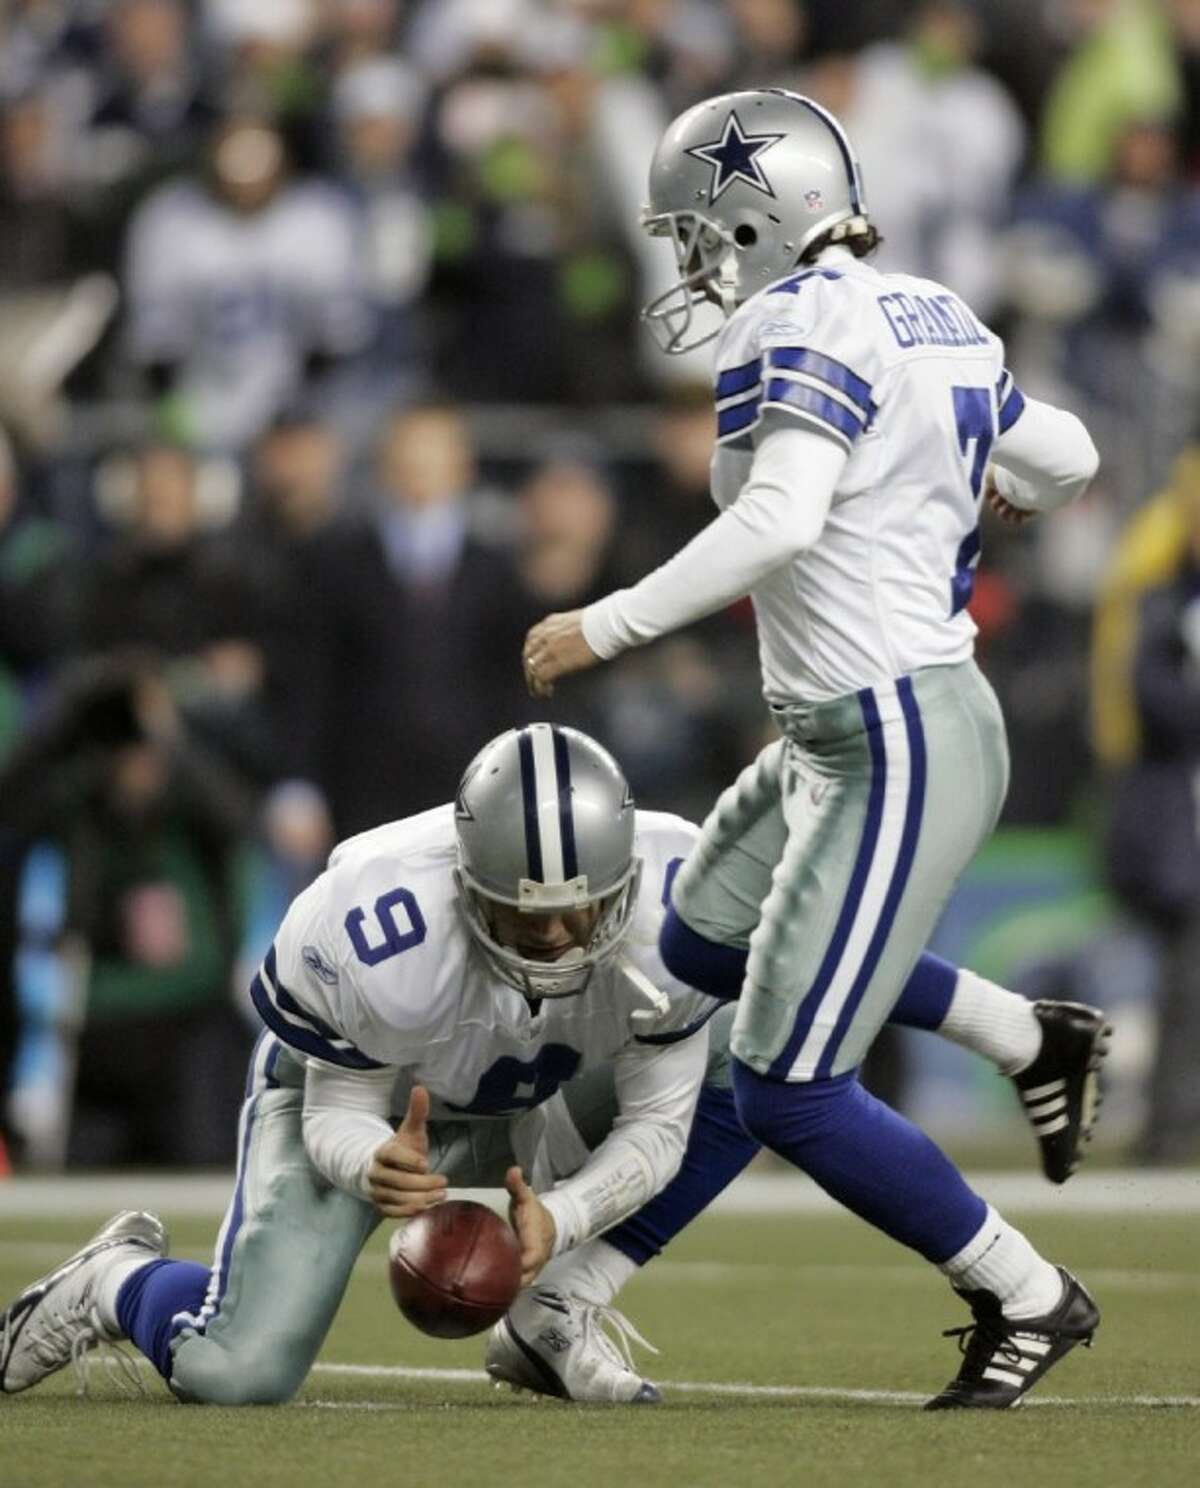 This fumbled snap by Cowboys quarterback Tony Romo doomed Dallas in a playoff game in the 2006-07 season at Seattle. The Cowboys are on the road to play the Seahawks today.